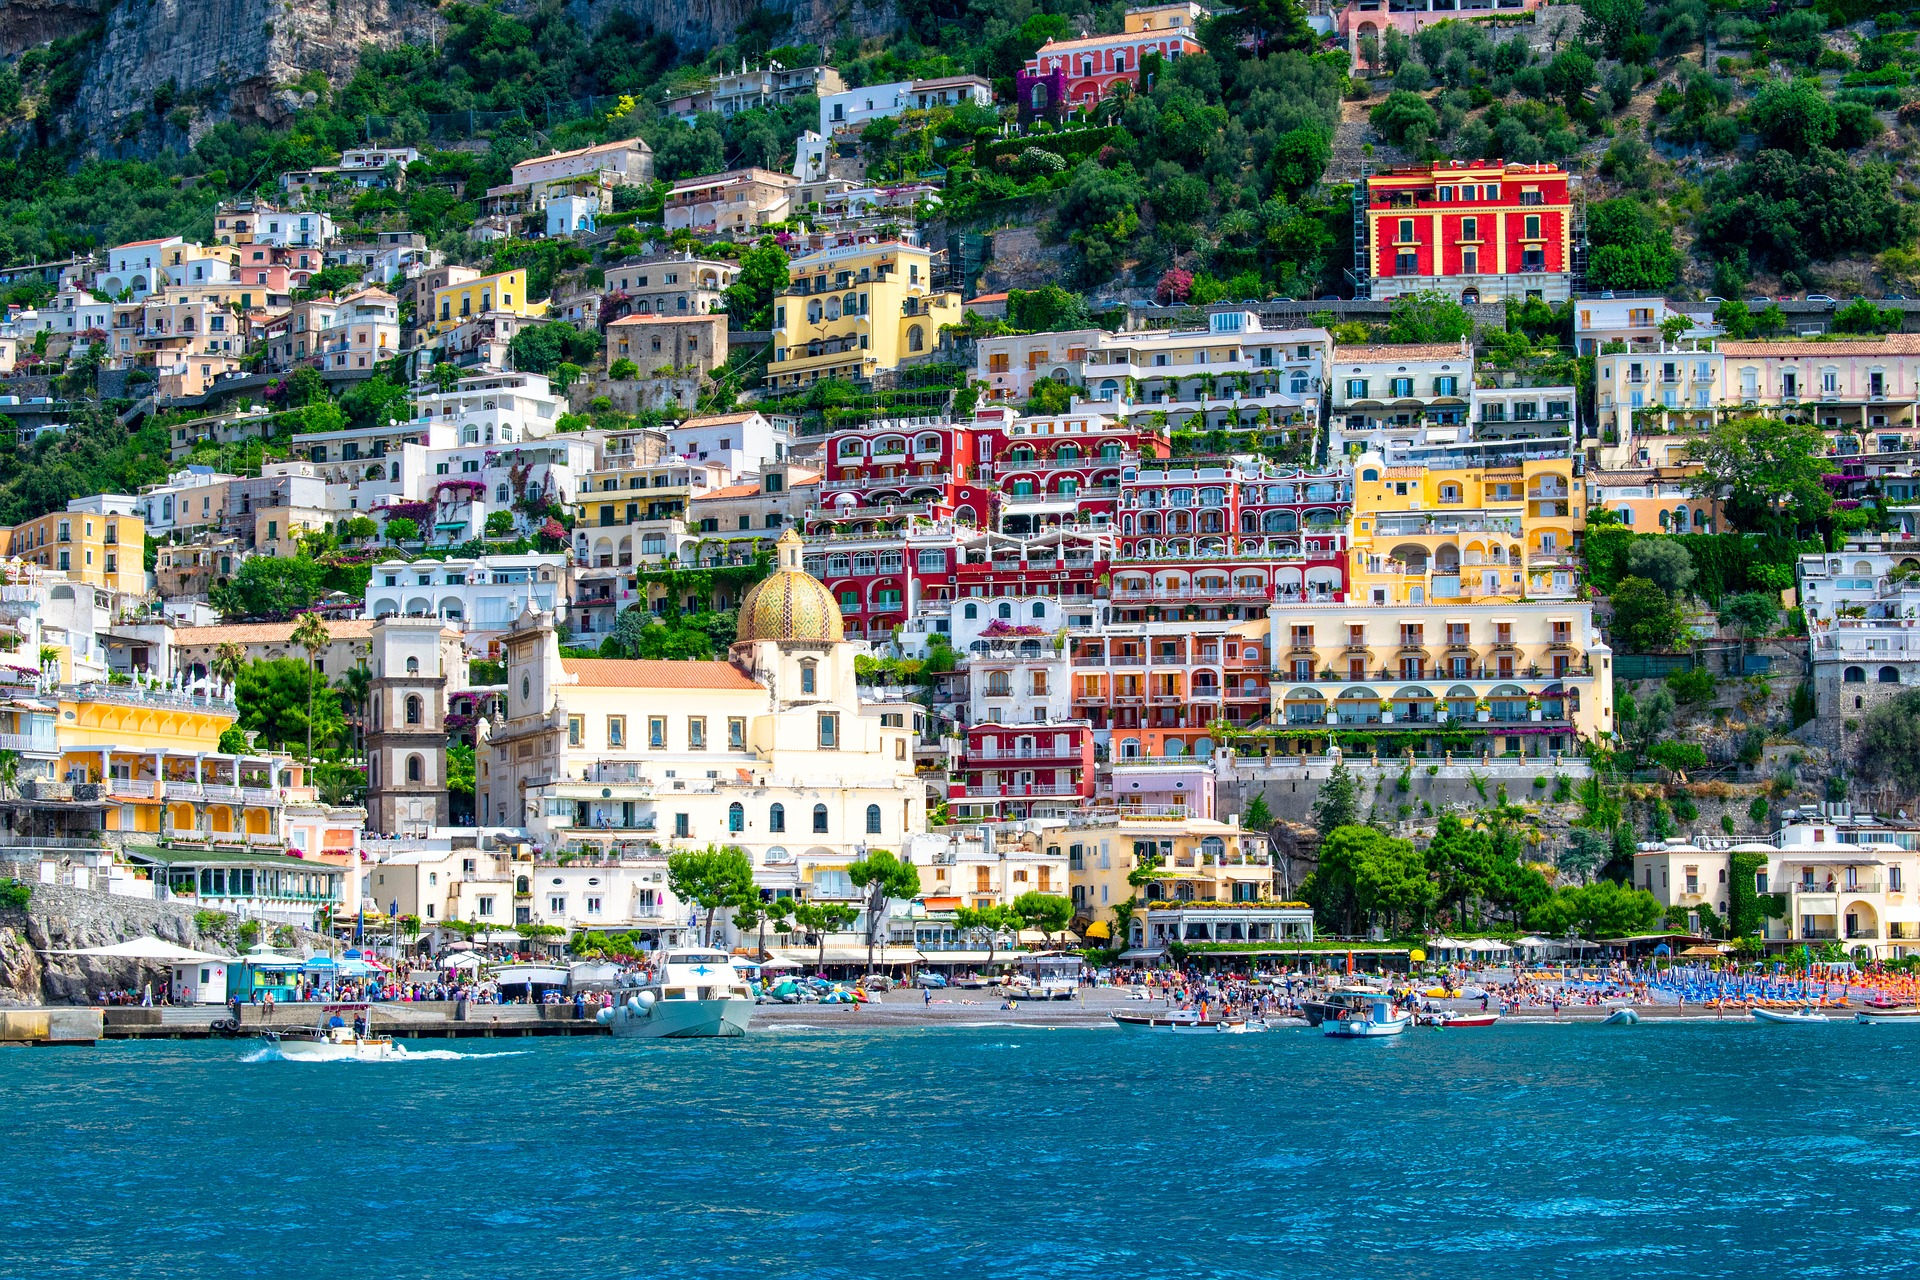 Most beautiful places Positano